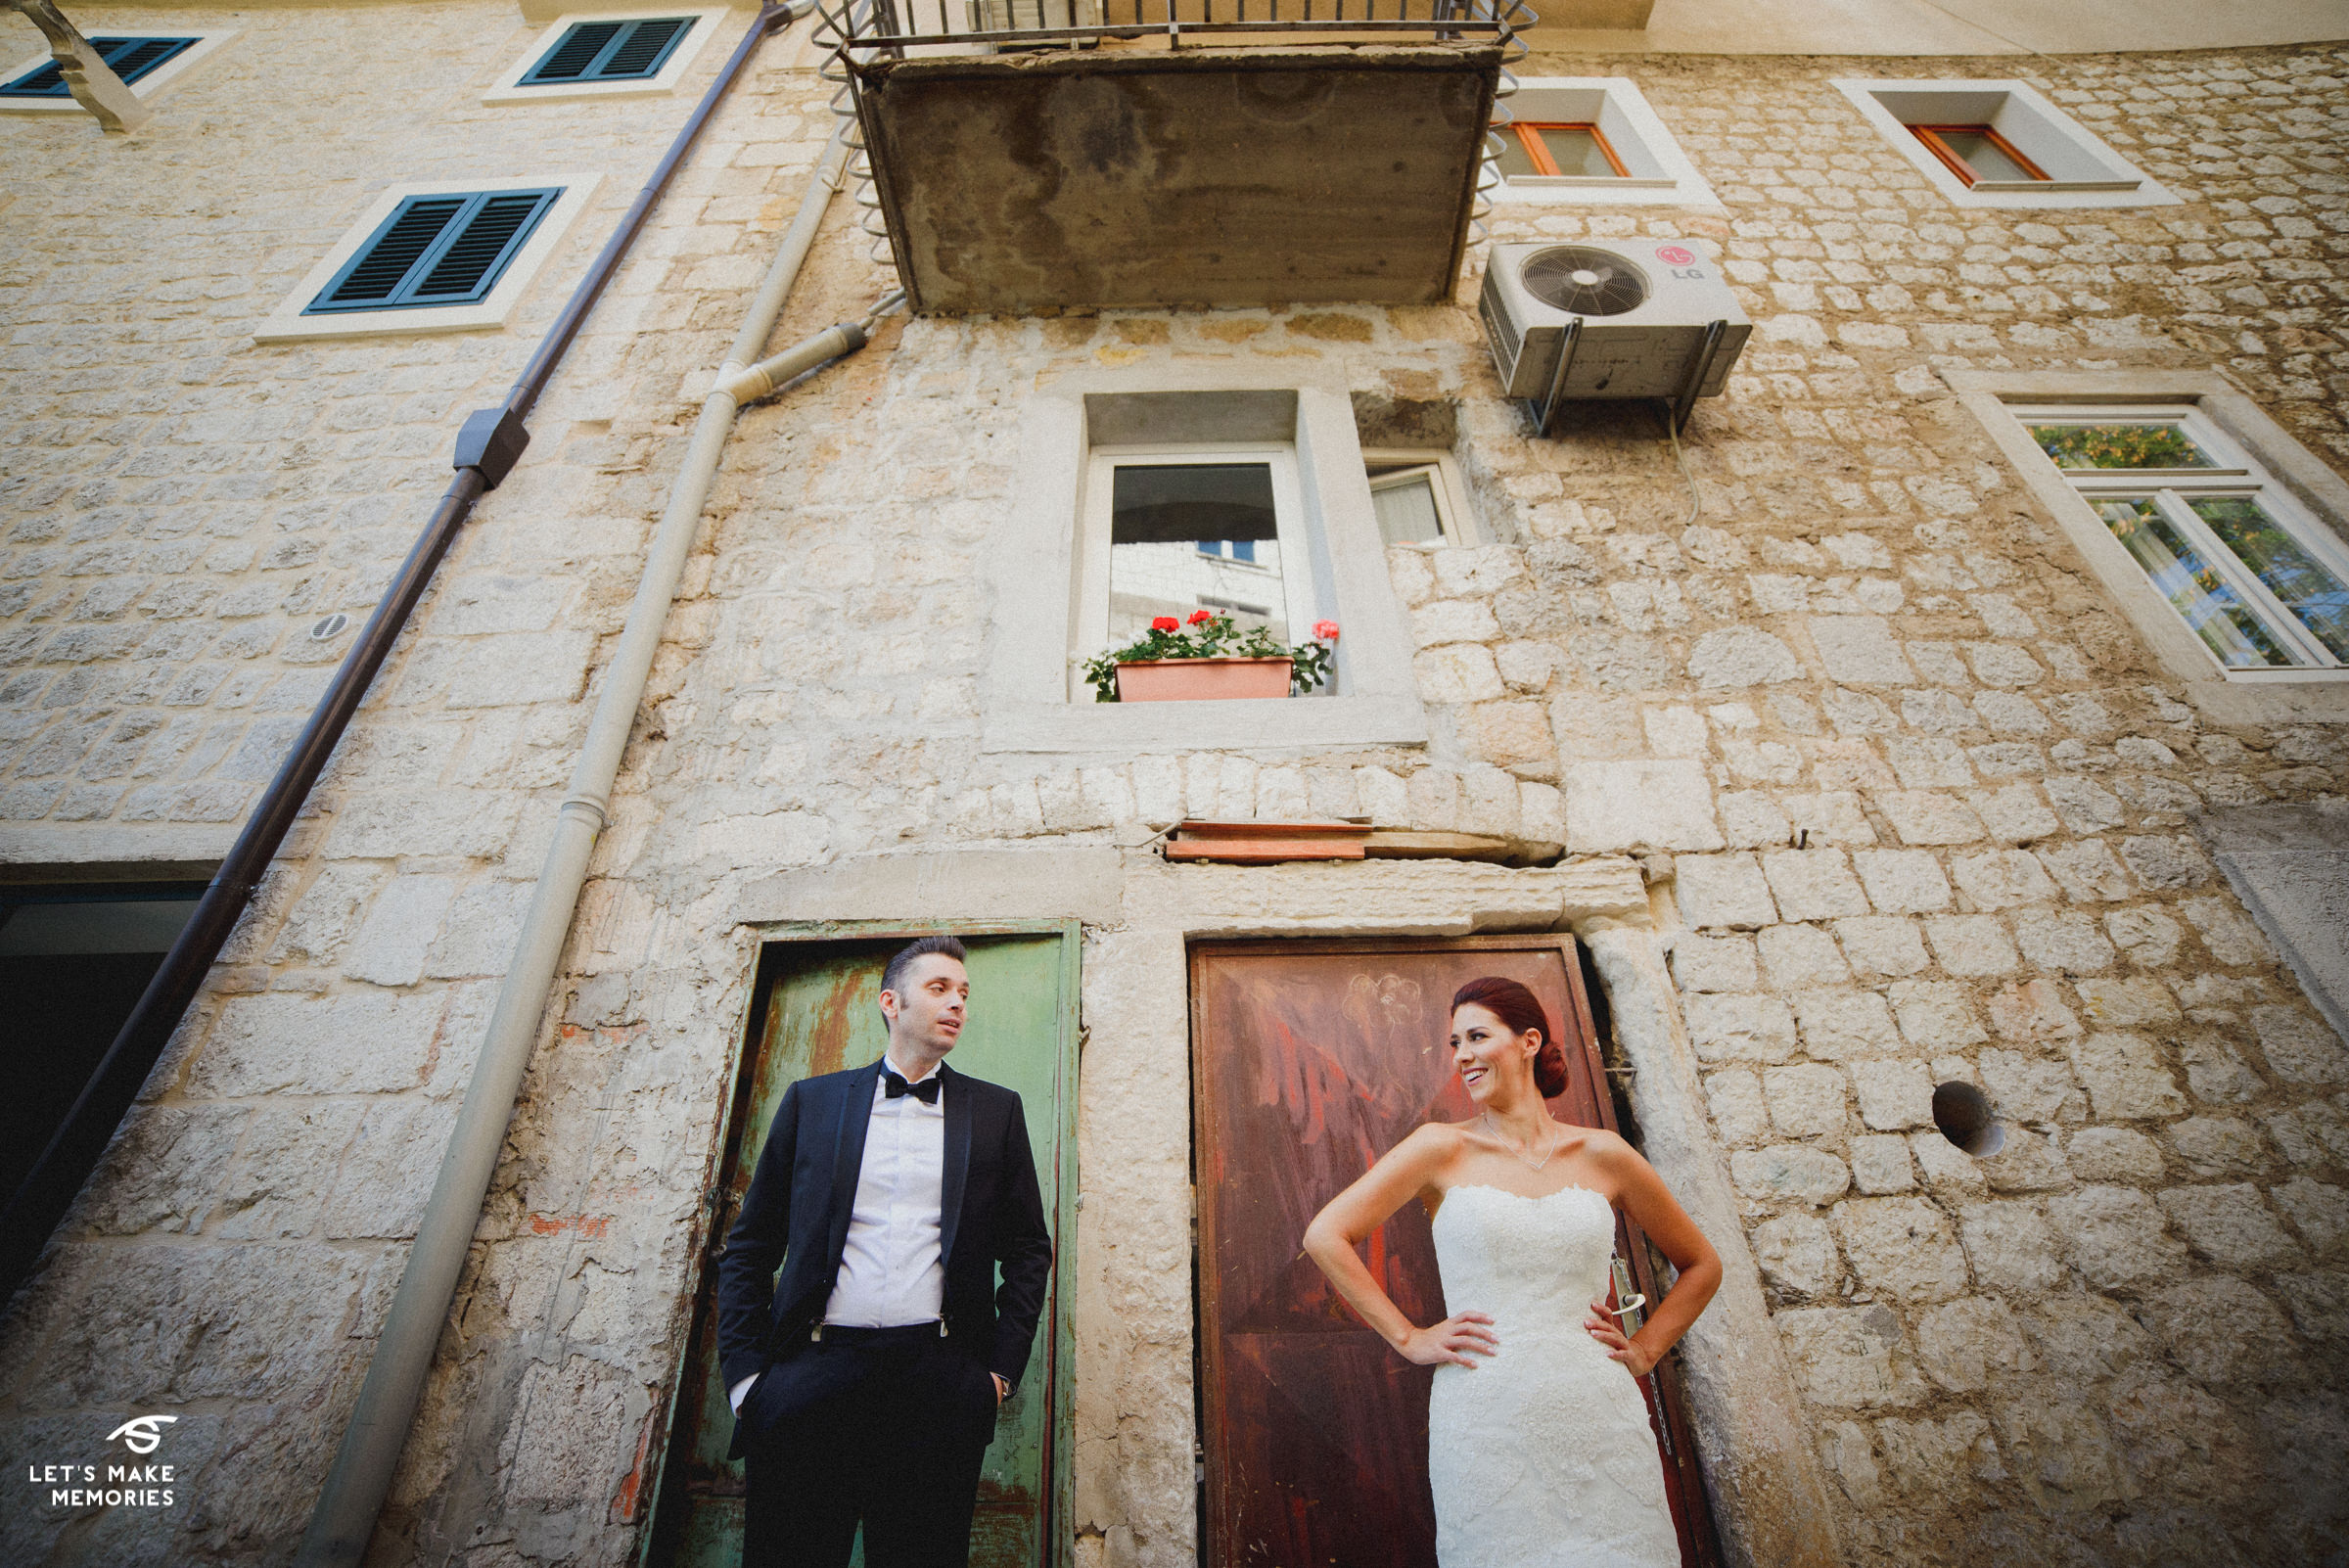 juxtaposition of couple in front of old rusty doors